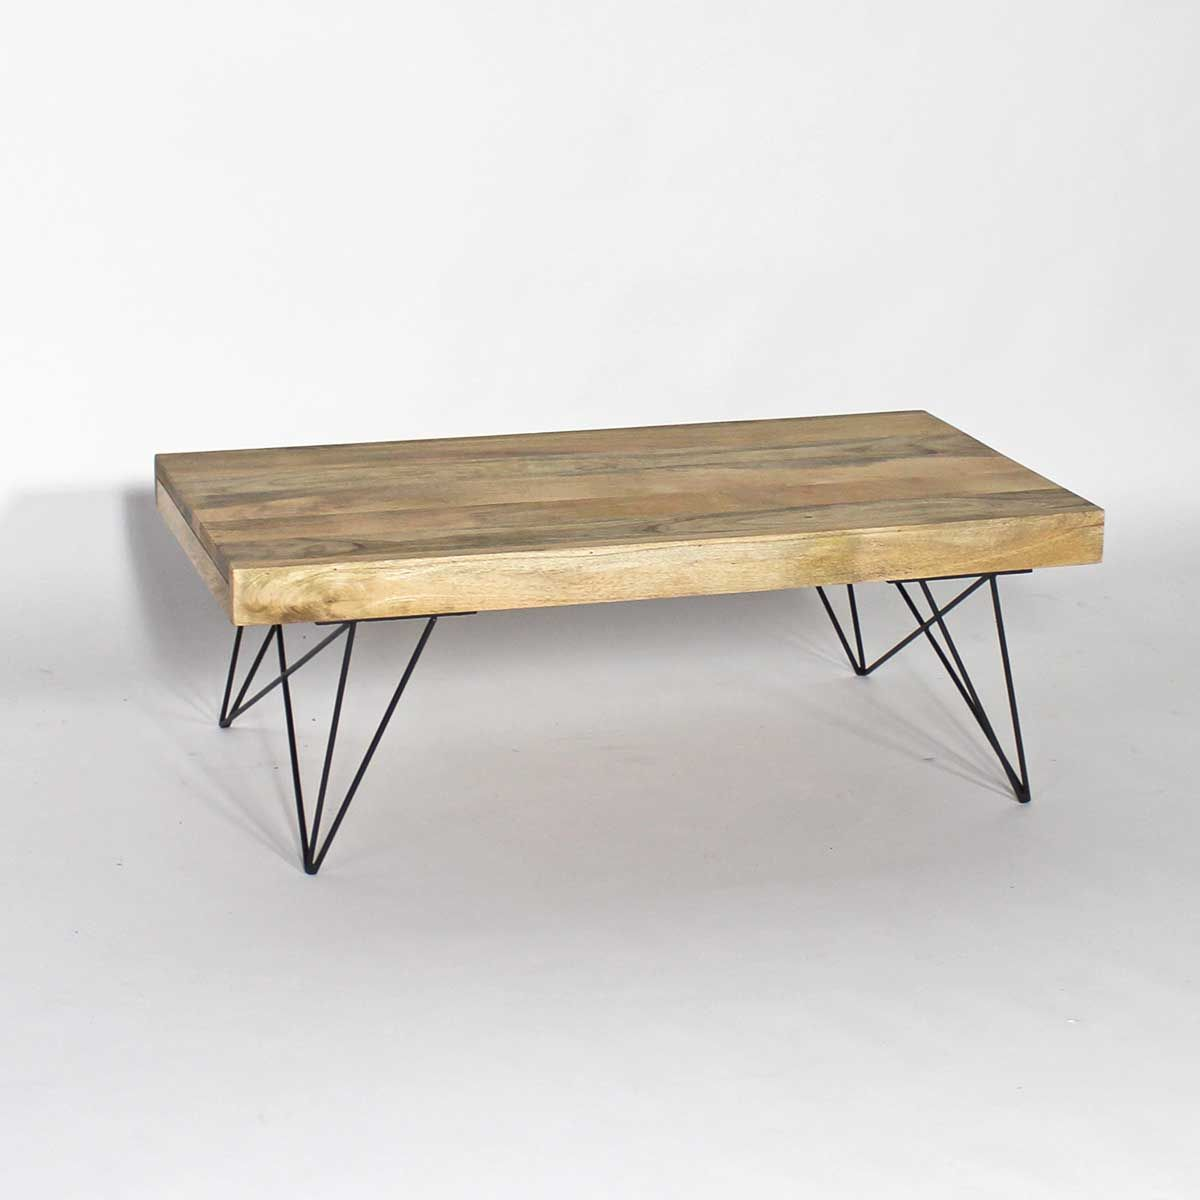 Avis Made In Meuble Table Basse Bois Metal Style Scandinave Bt0278x Made In Meubles